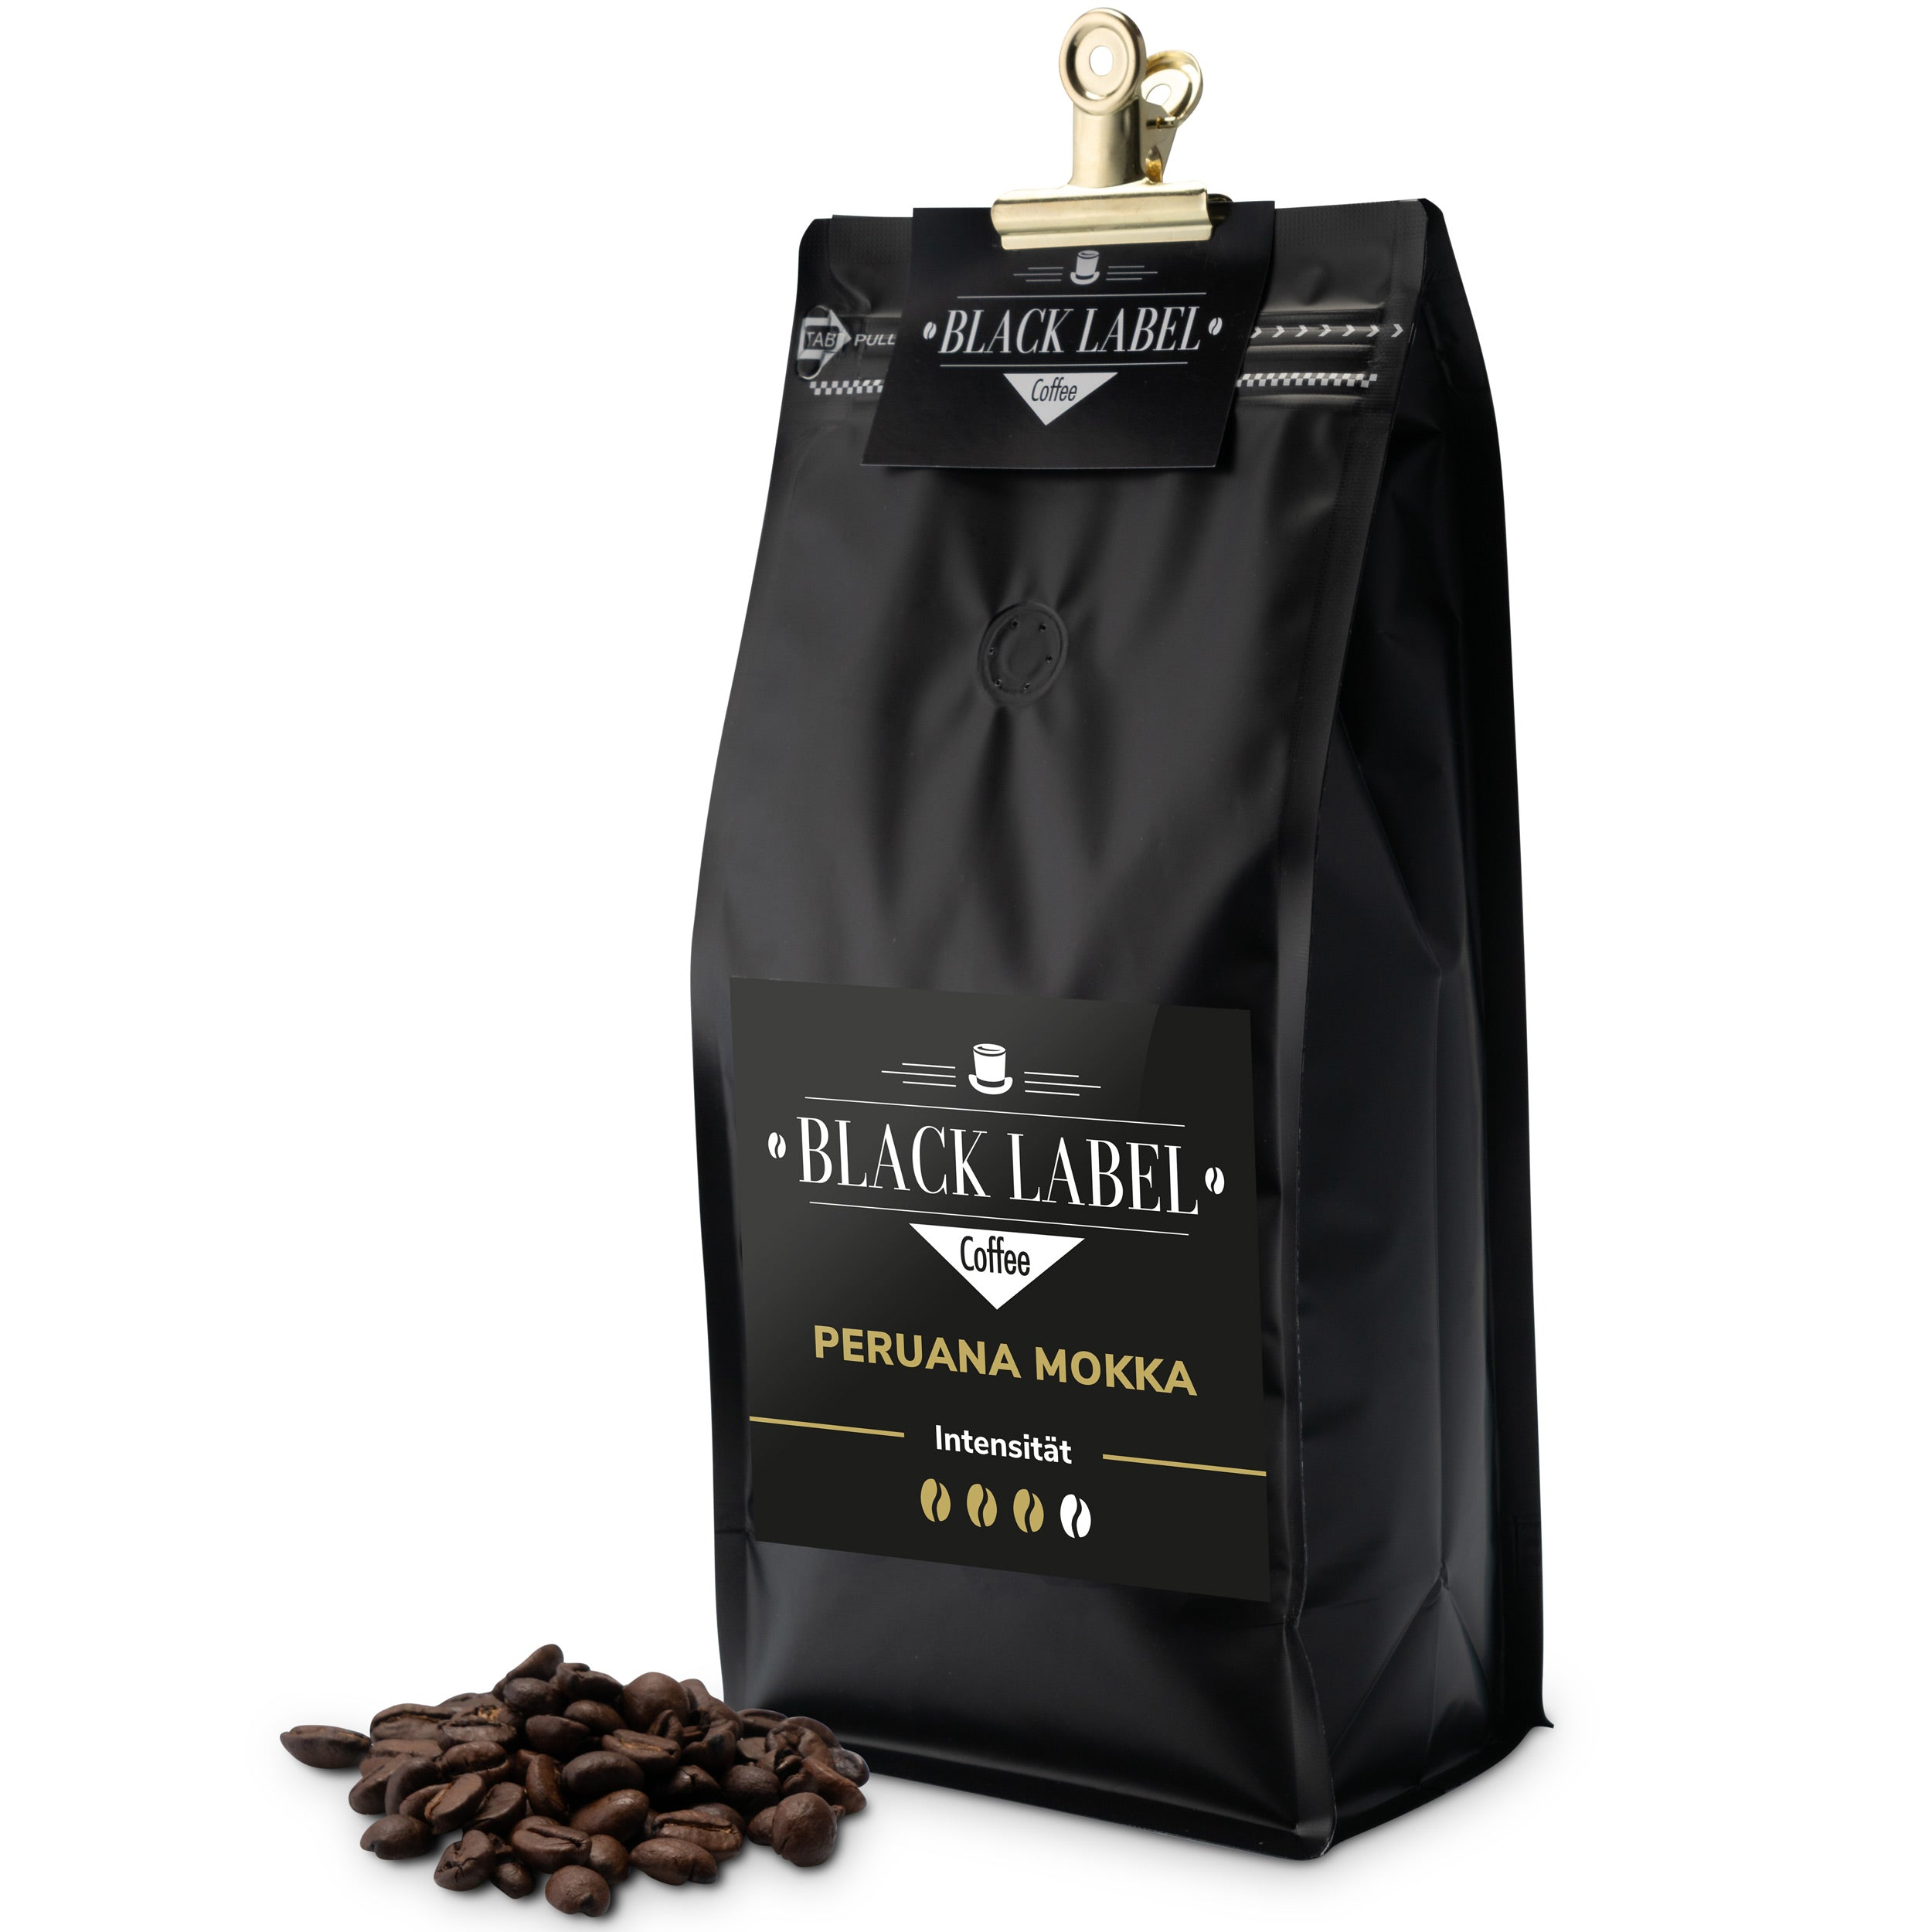 Peruana Mokka von Black Label Coffee